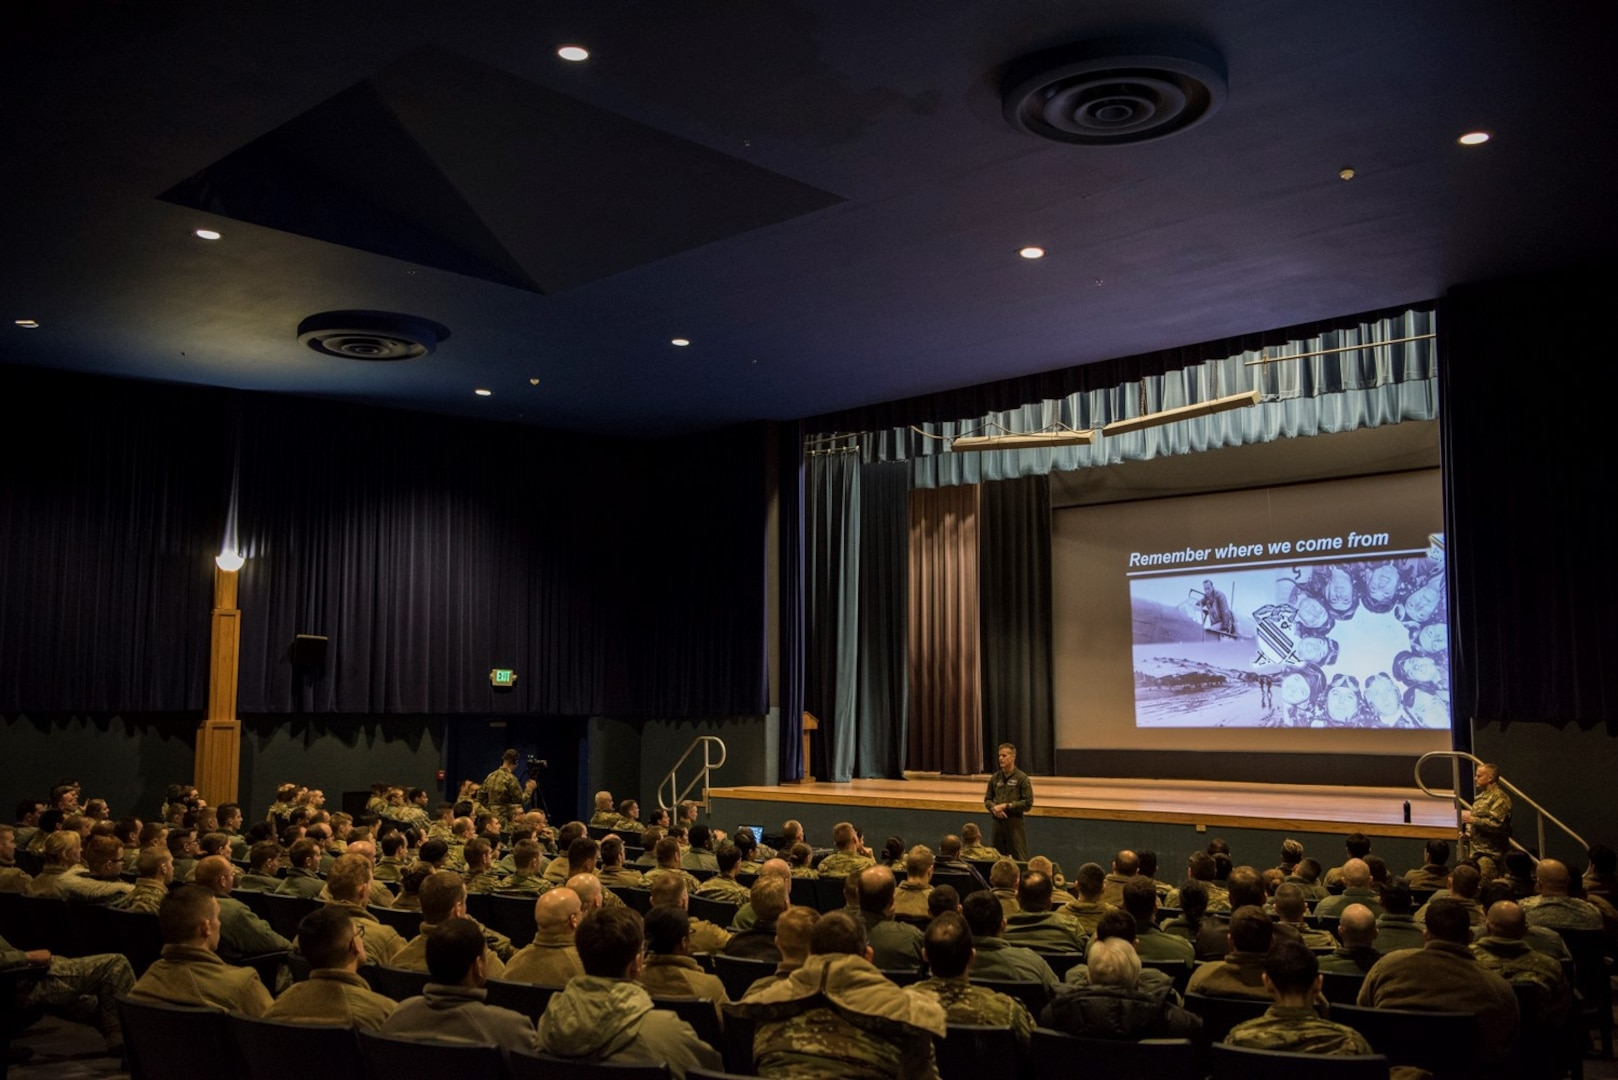 354th Fighter Wing Commander Maps Out 2020